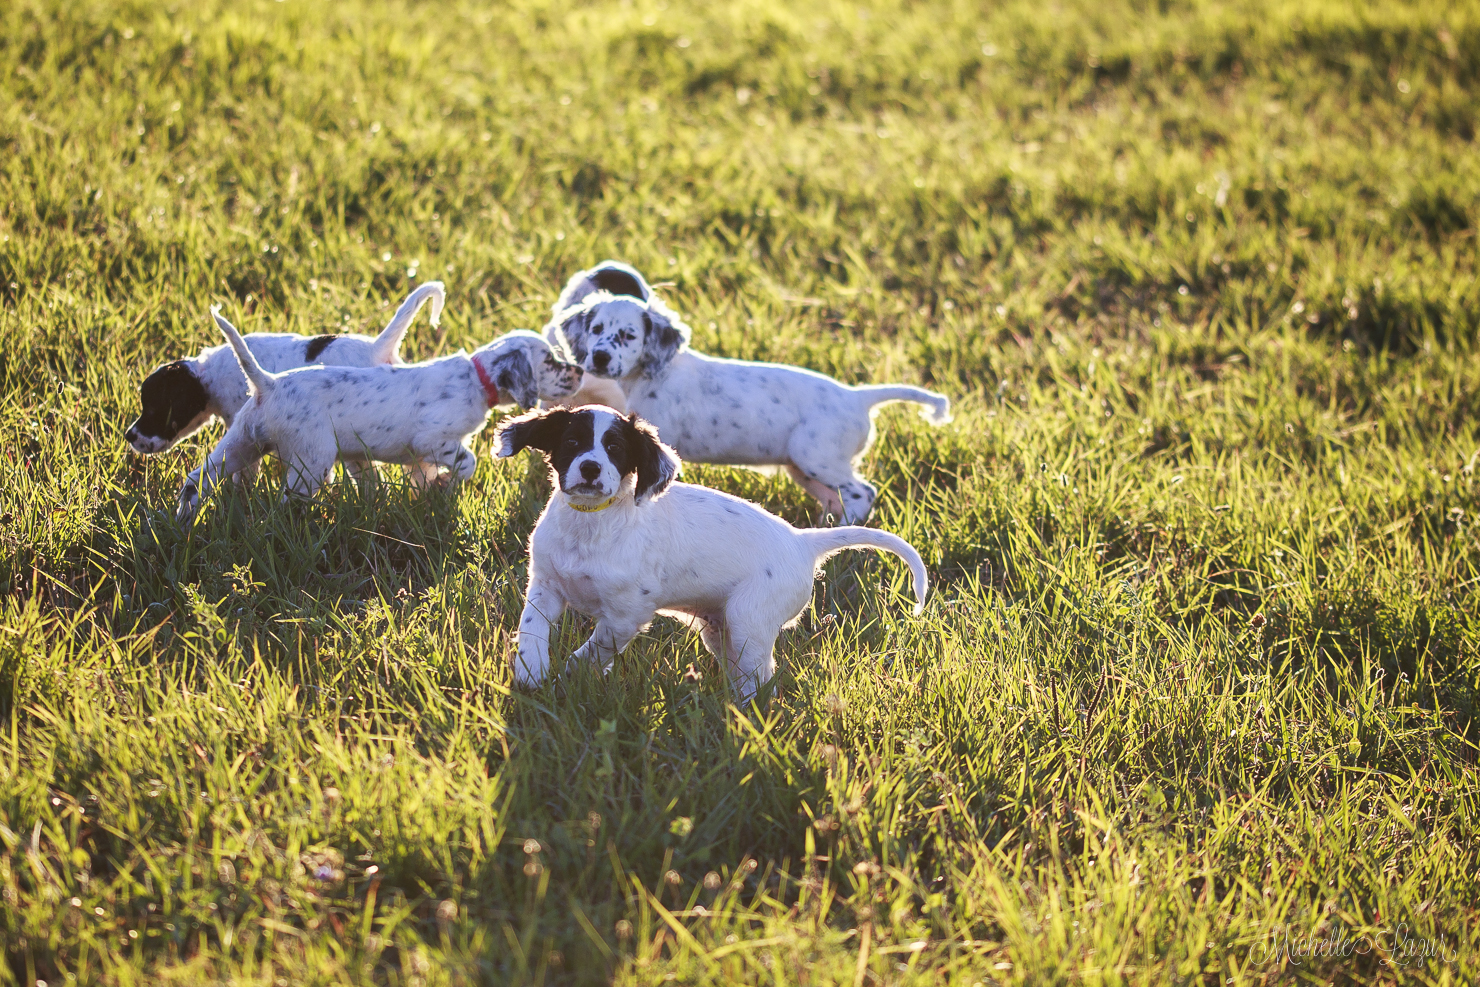 Puppy play time 20150930-_MG_2595